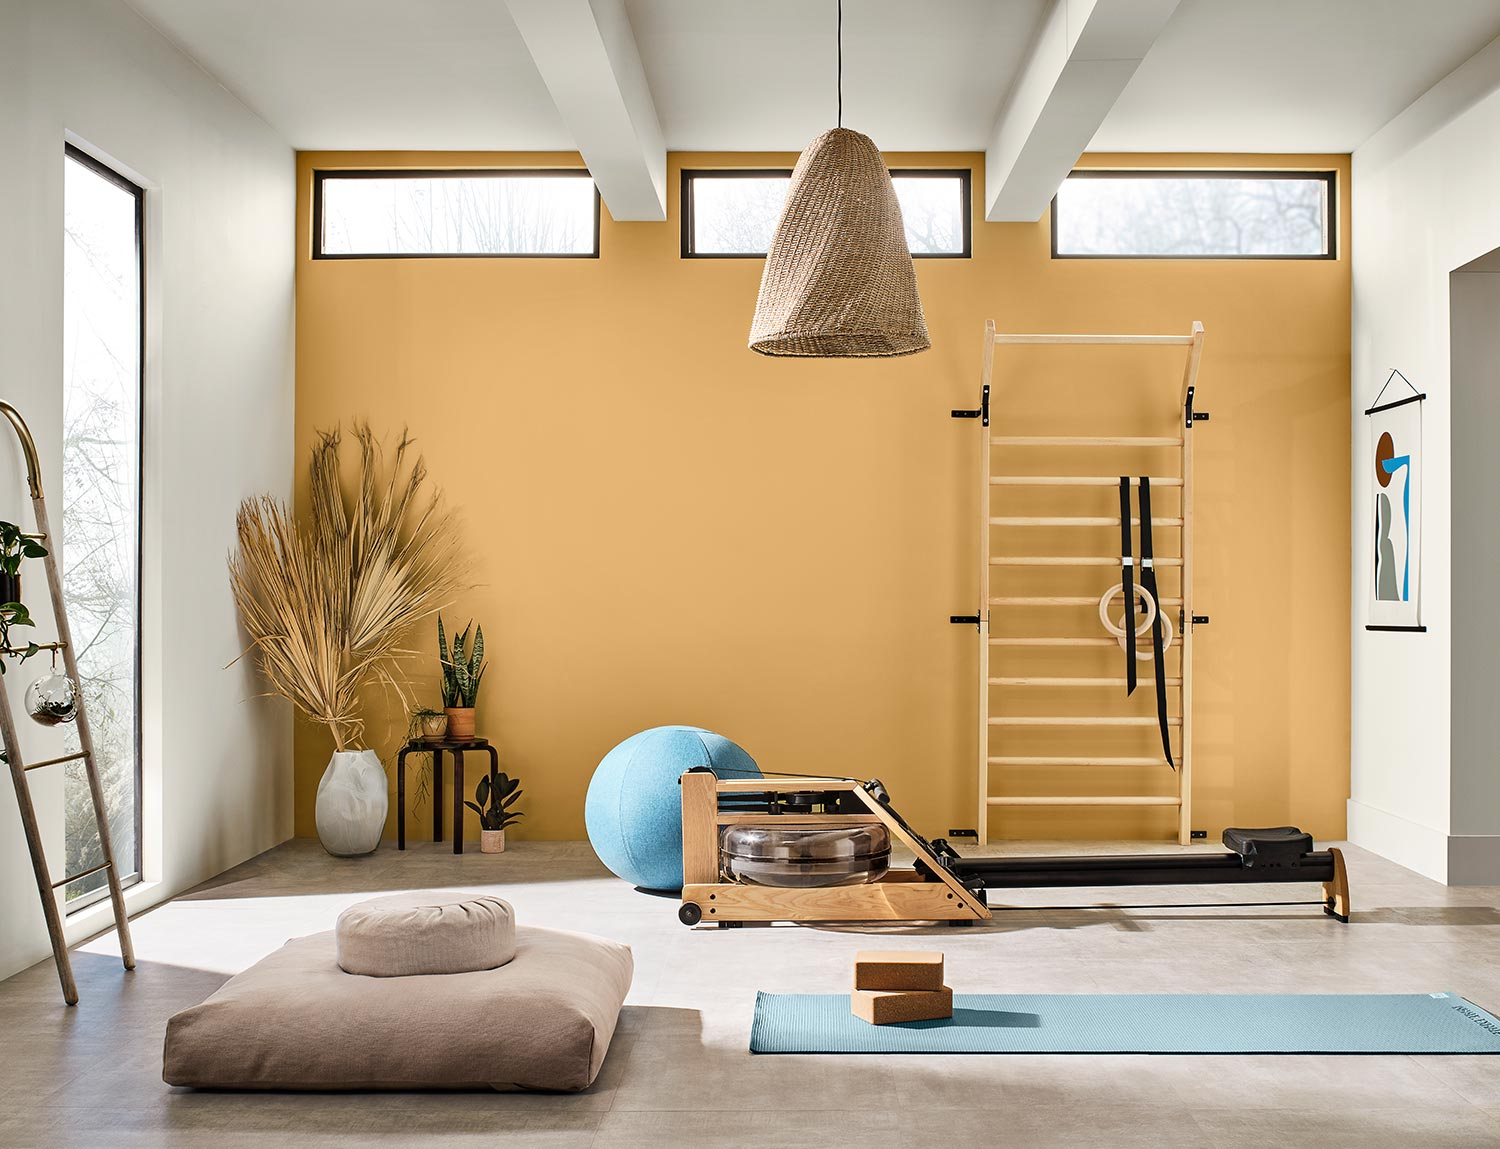 Home gym with equipment, plants and a meditation area with accent wall painted a golden hue: Tarnished Trumpet SW 9026.